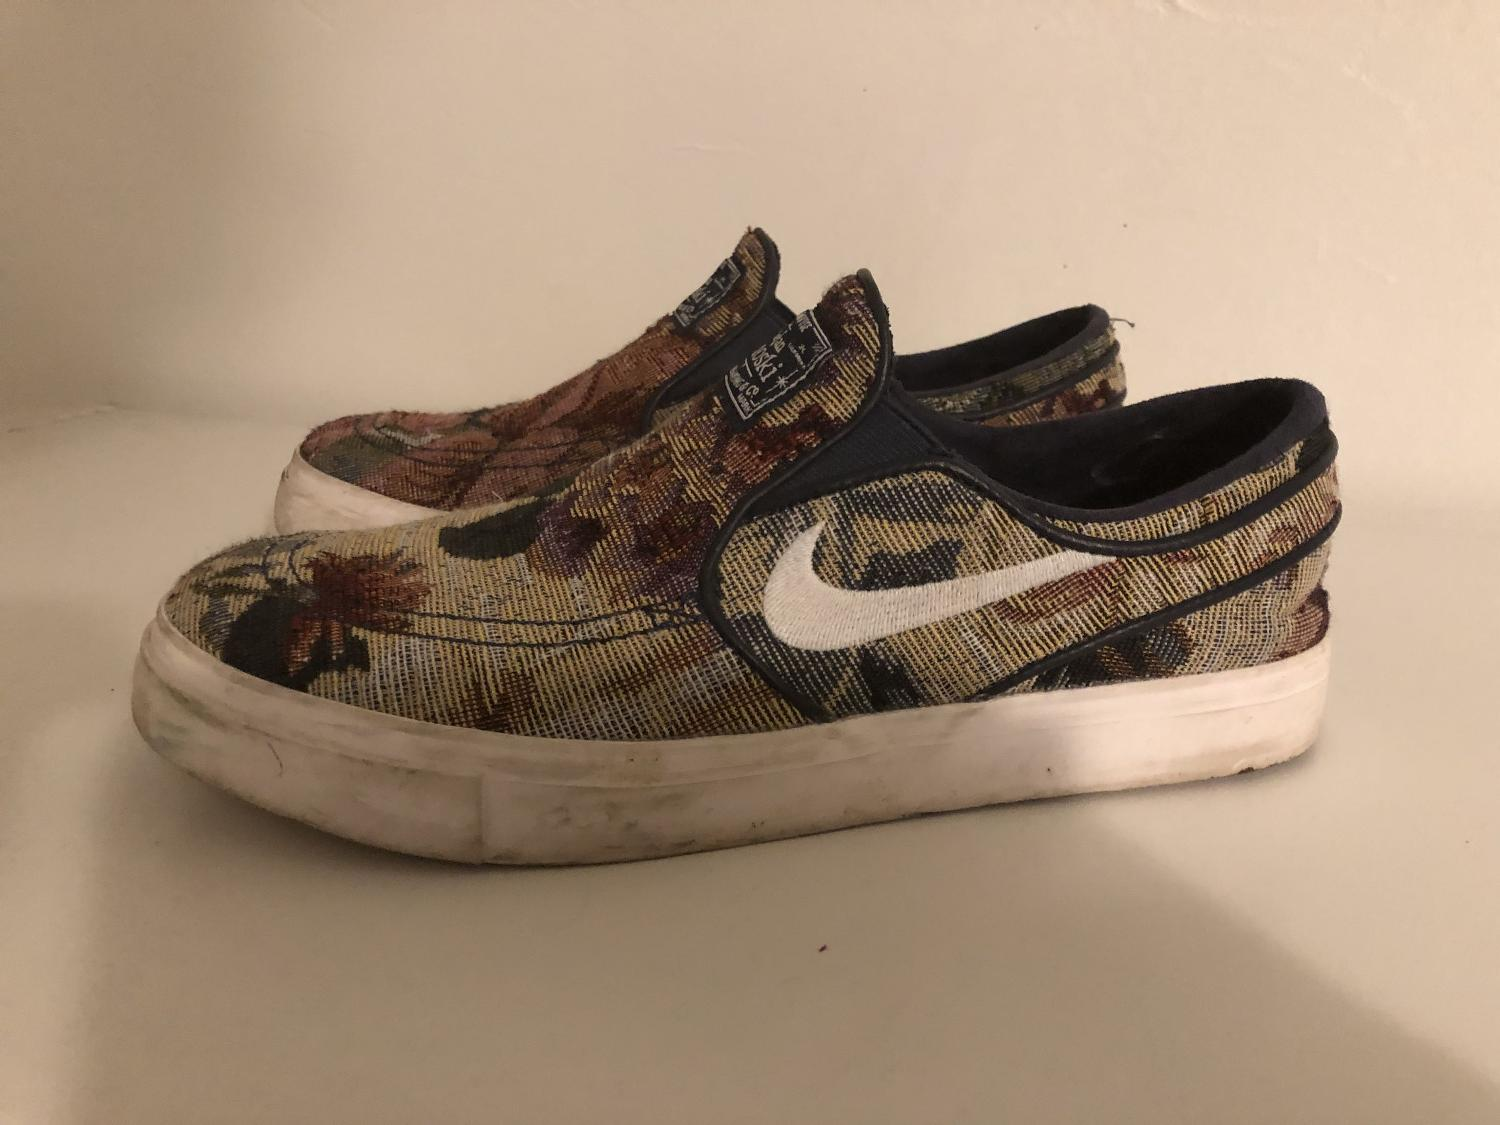 f2b11cfdc3 Best Floral Nike Sneakers for sale in Vancouver, British Columbia for 2019